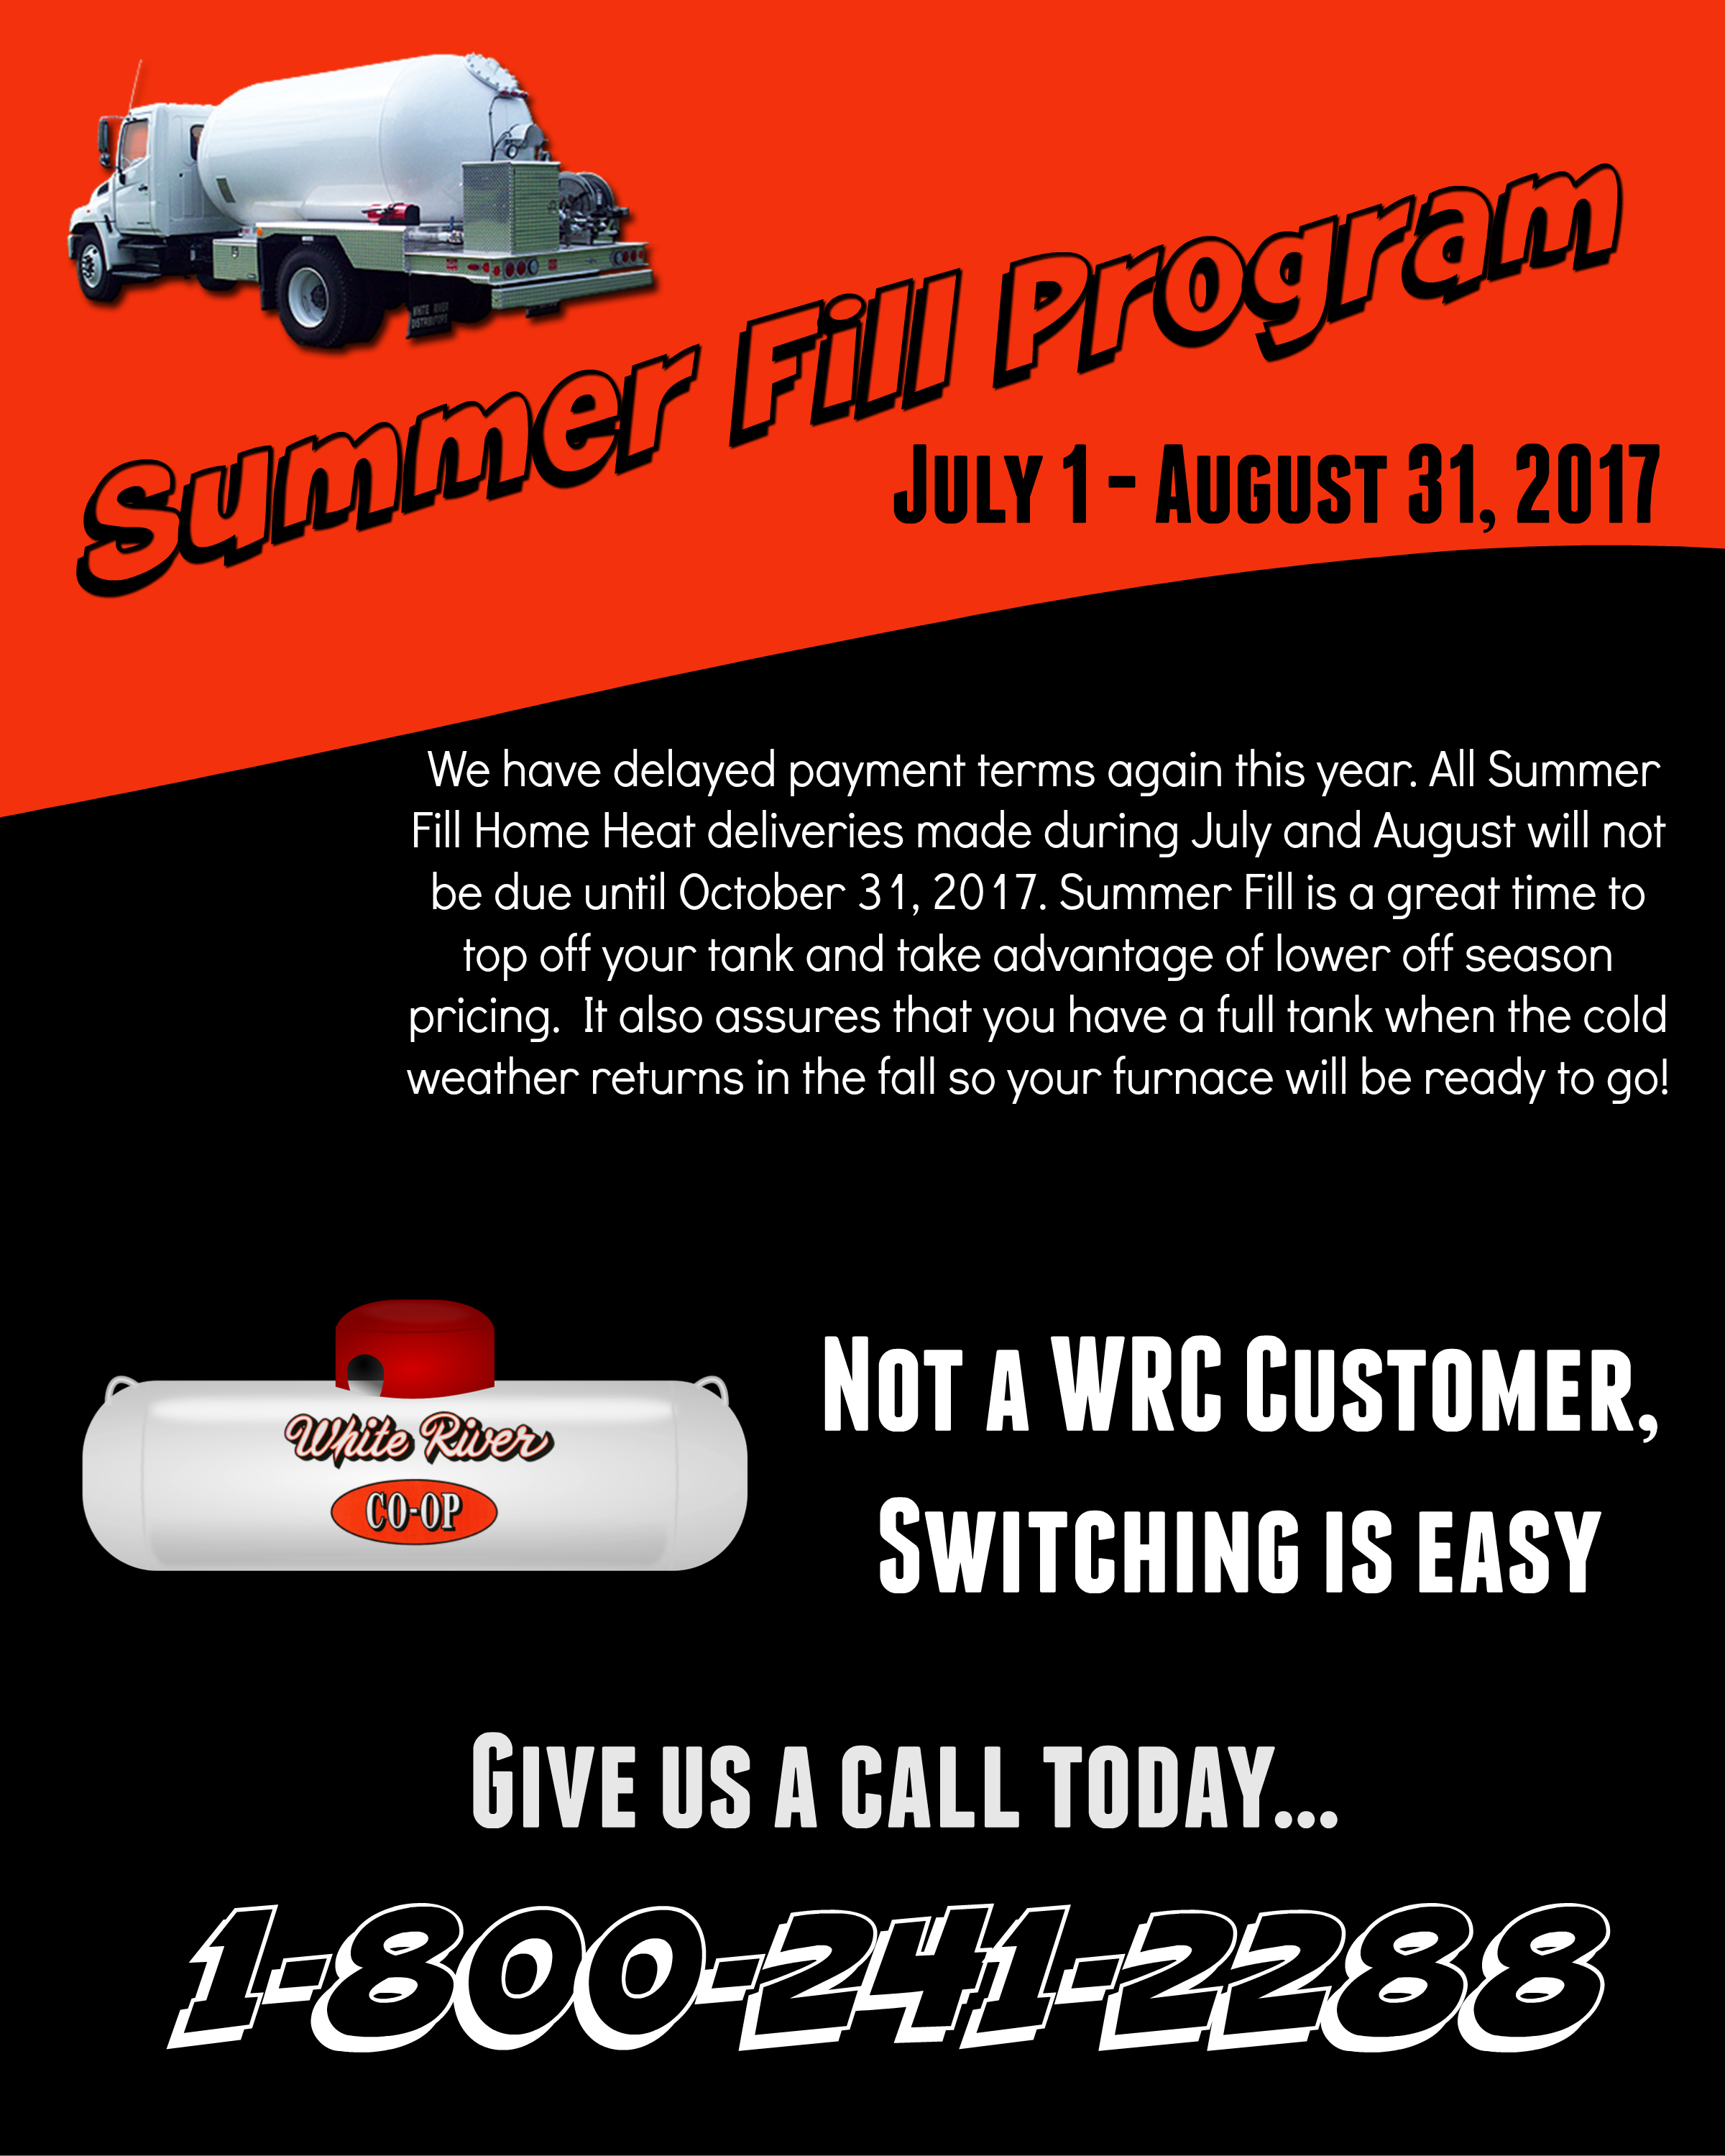 White River Co-op Summer Fill Program